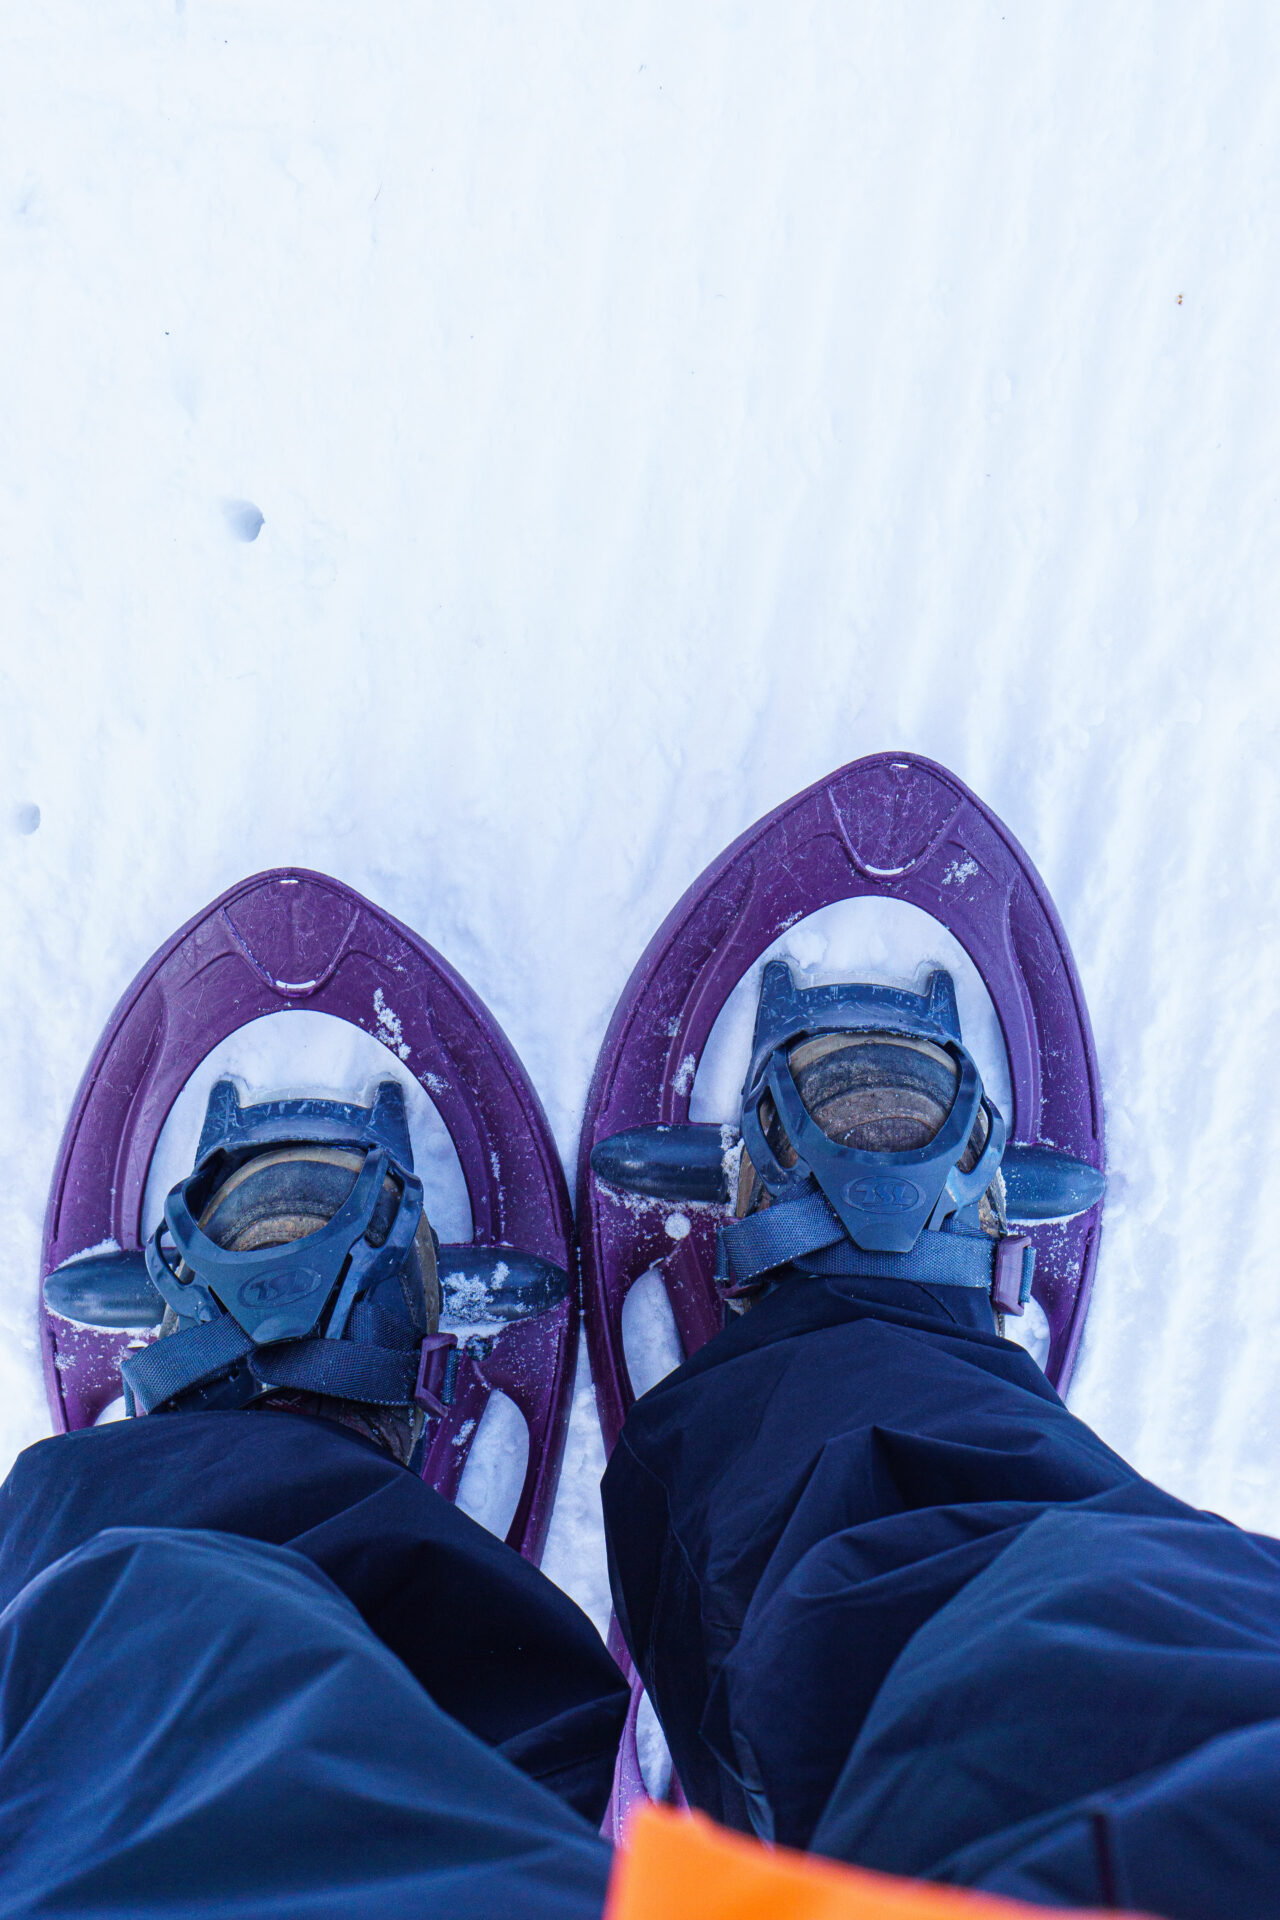 Snowshoe hiking in Les Arcs, cool things to do in France